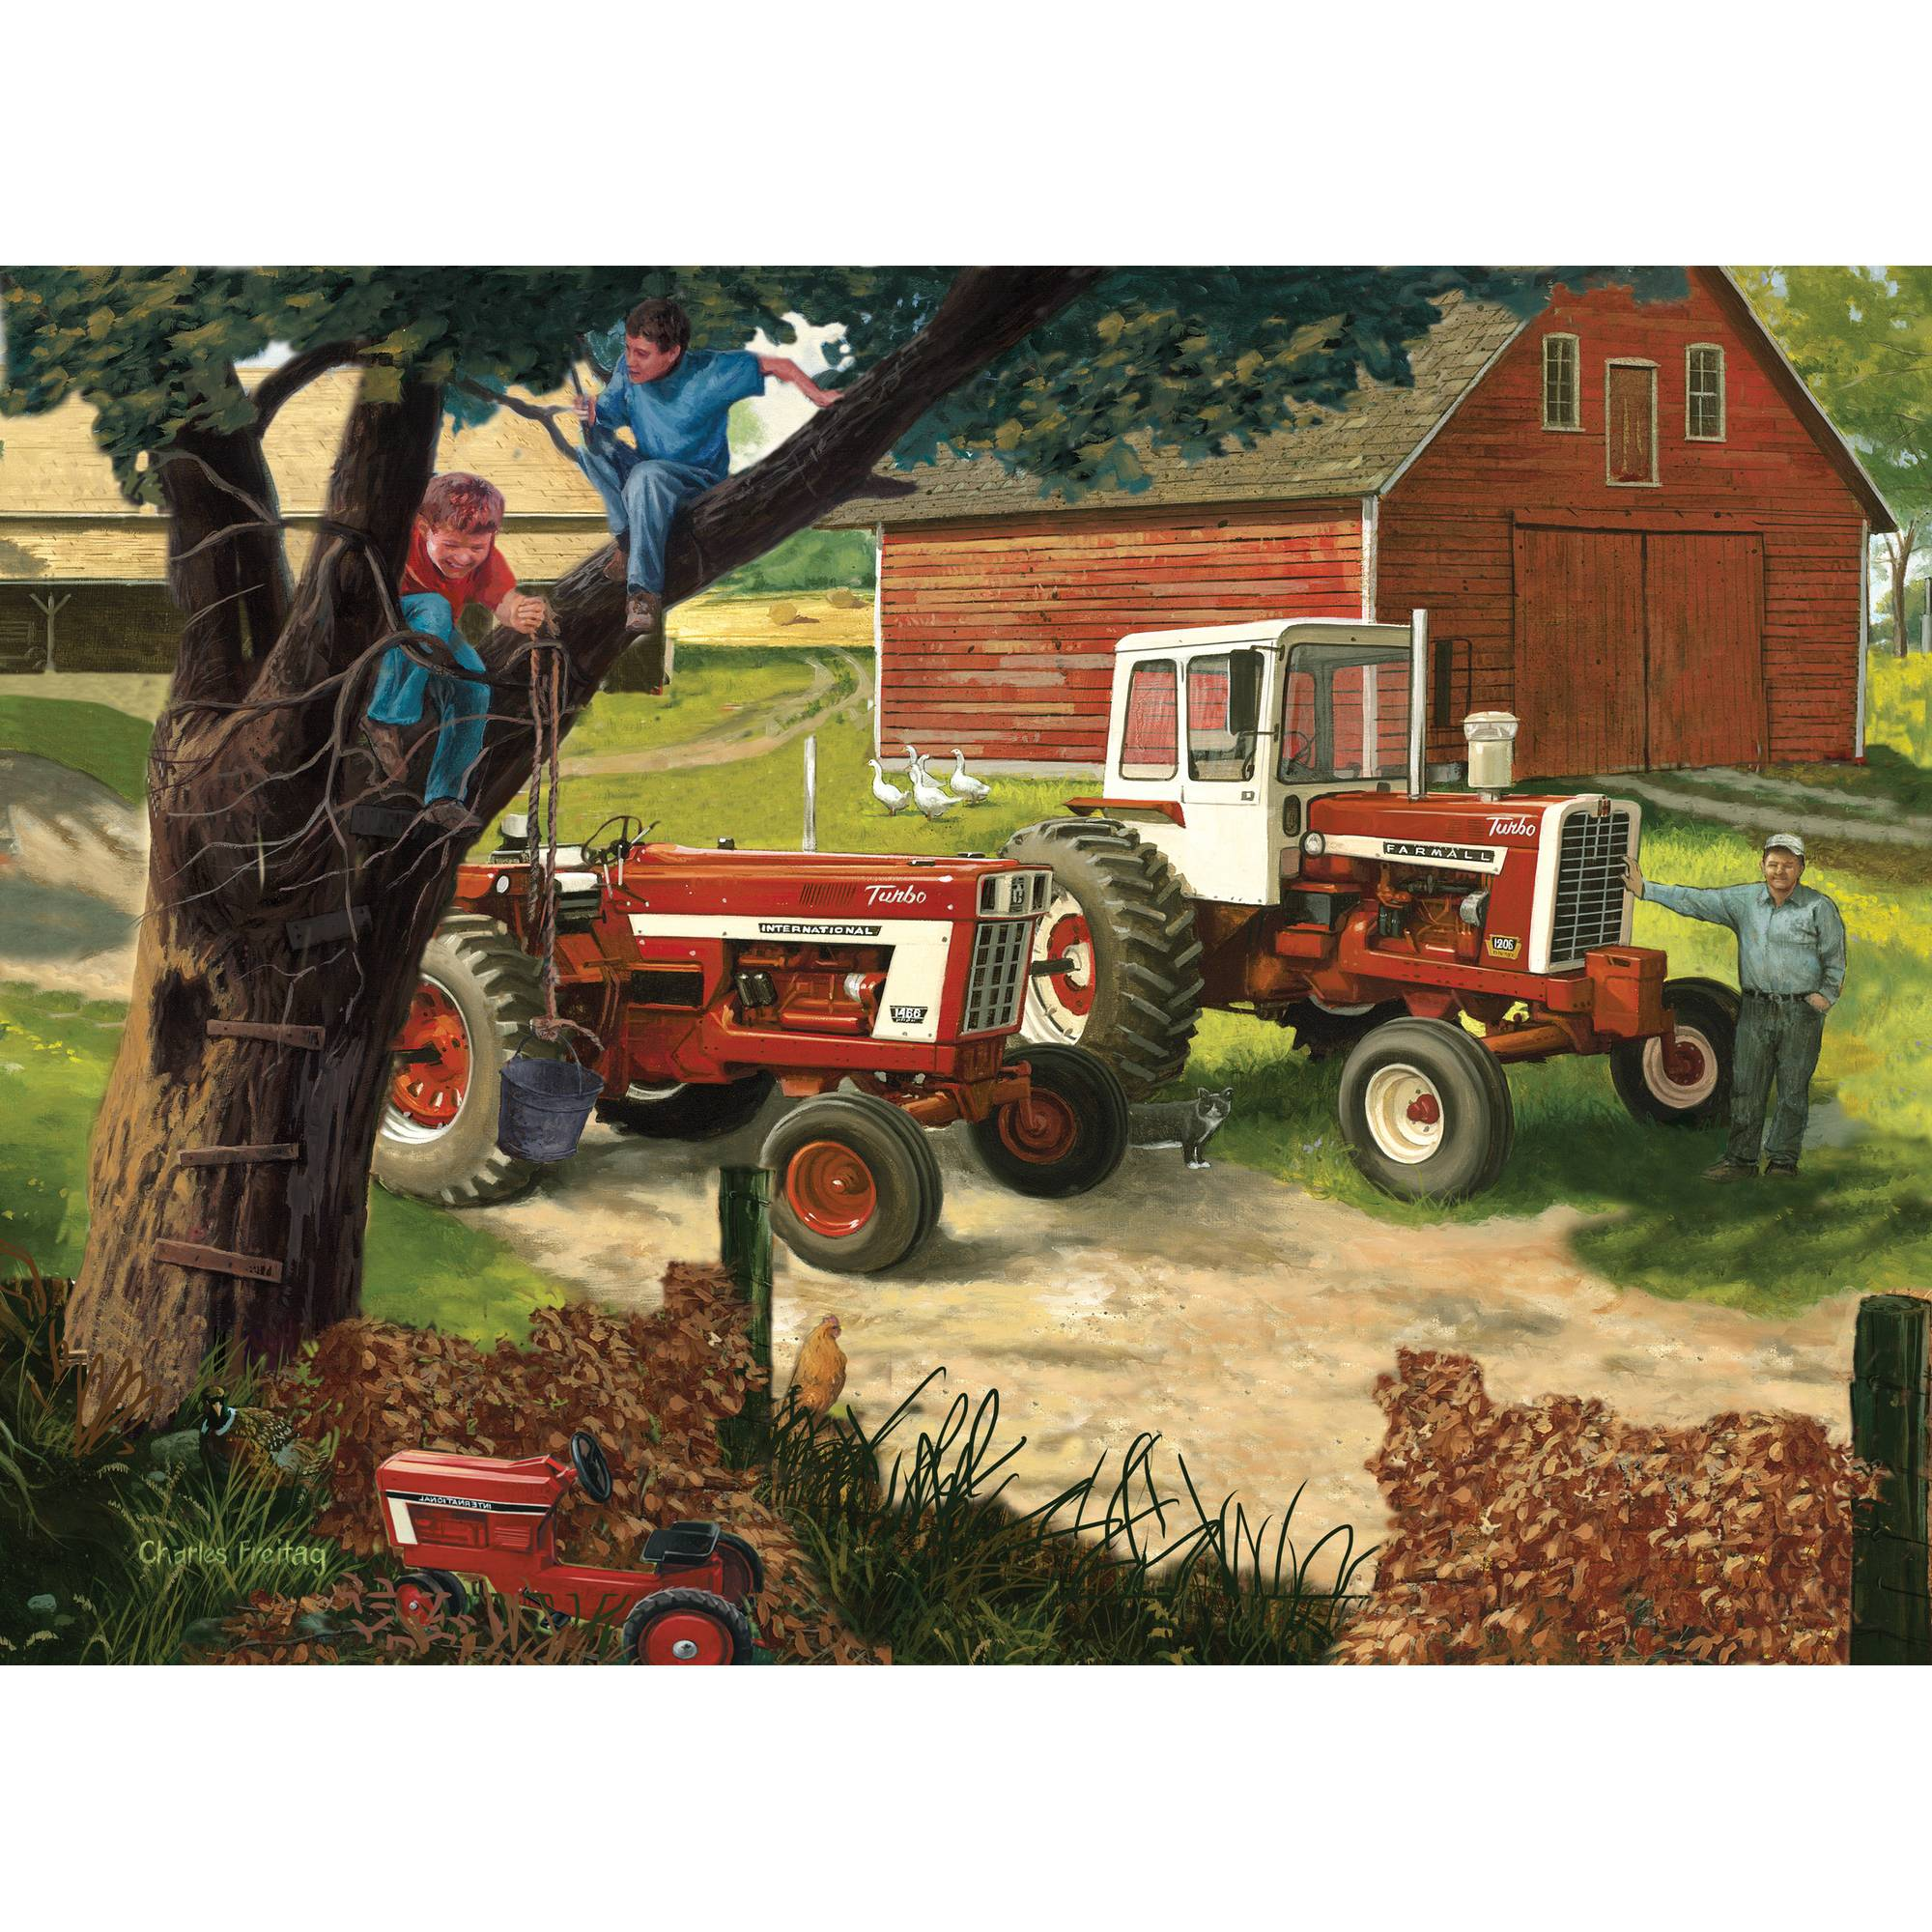 MasterPieces Boys and Their Toys 1000 Piece Puzzle